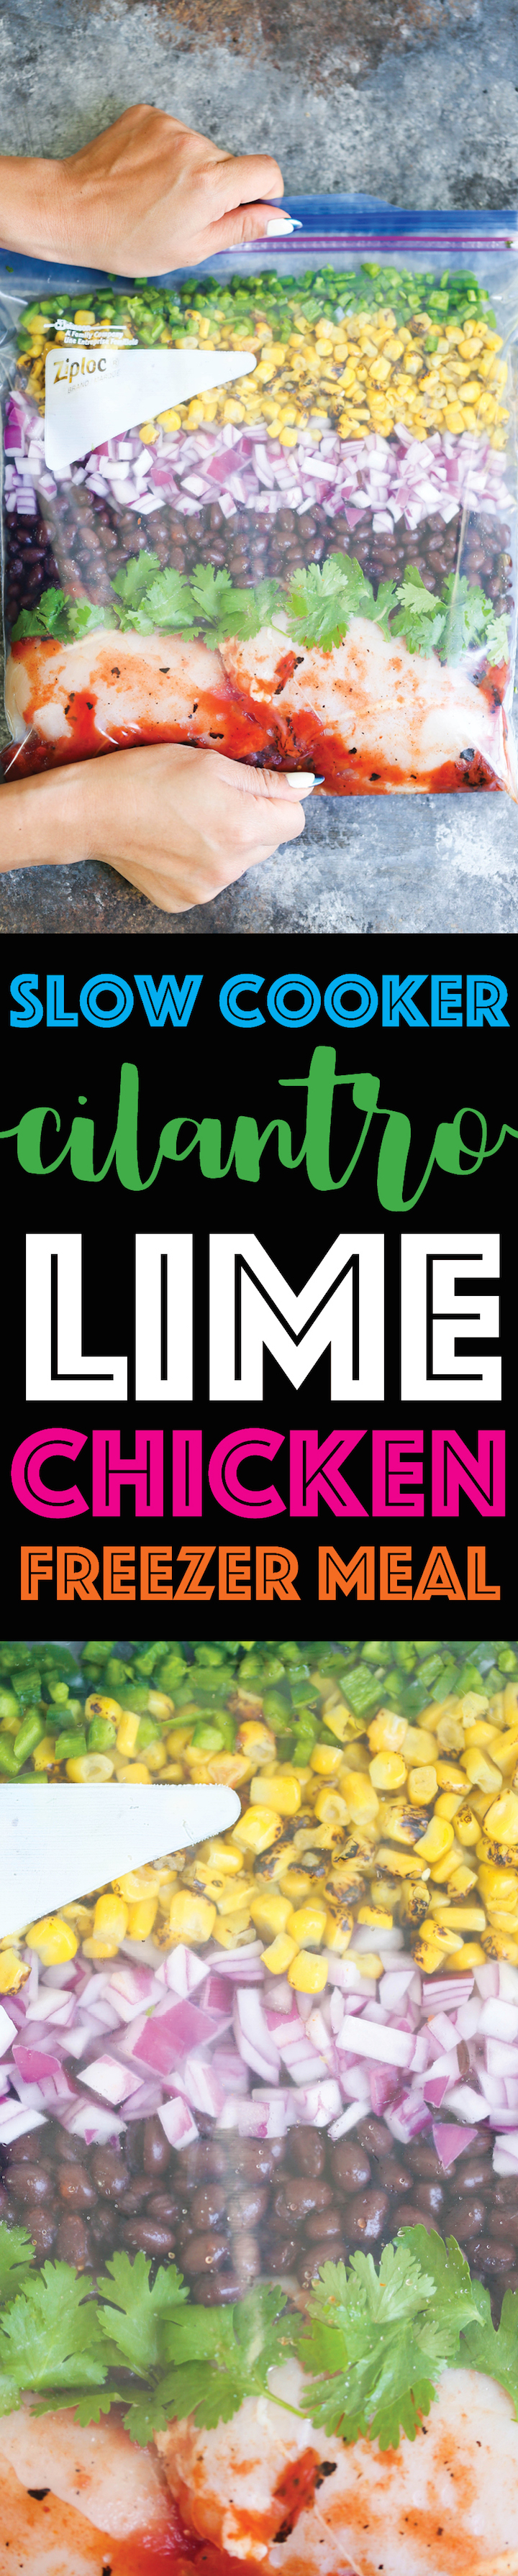 Slow Cooker Cilantro Lime Chicken - Stock your freezer with the easiest, quickest crockpot FREEZER MEAL!!! Simply drop into the crockpot and you're set!!!